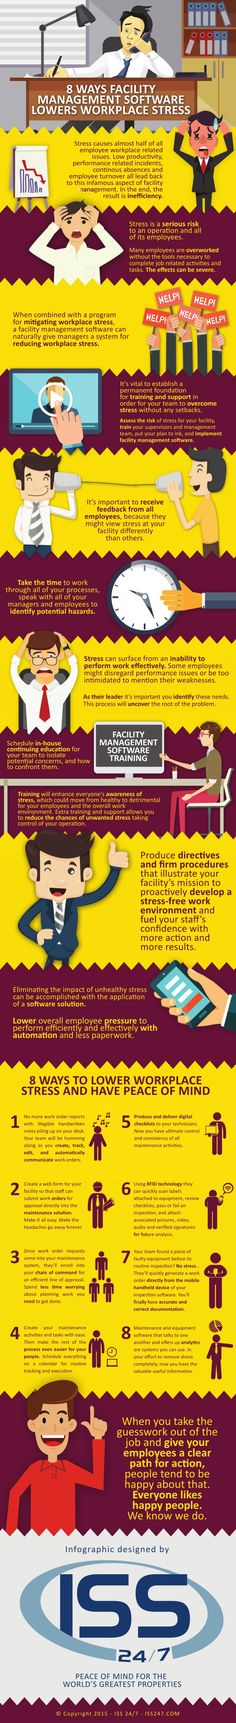 Is workplace stress a symptom of inefficiency at your facility? In this infographic, we outline 8 ways facility management software can help.